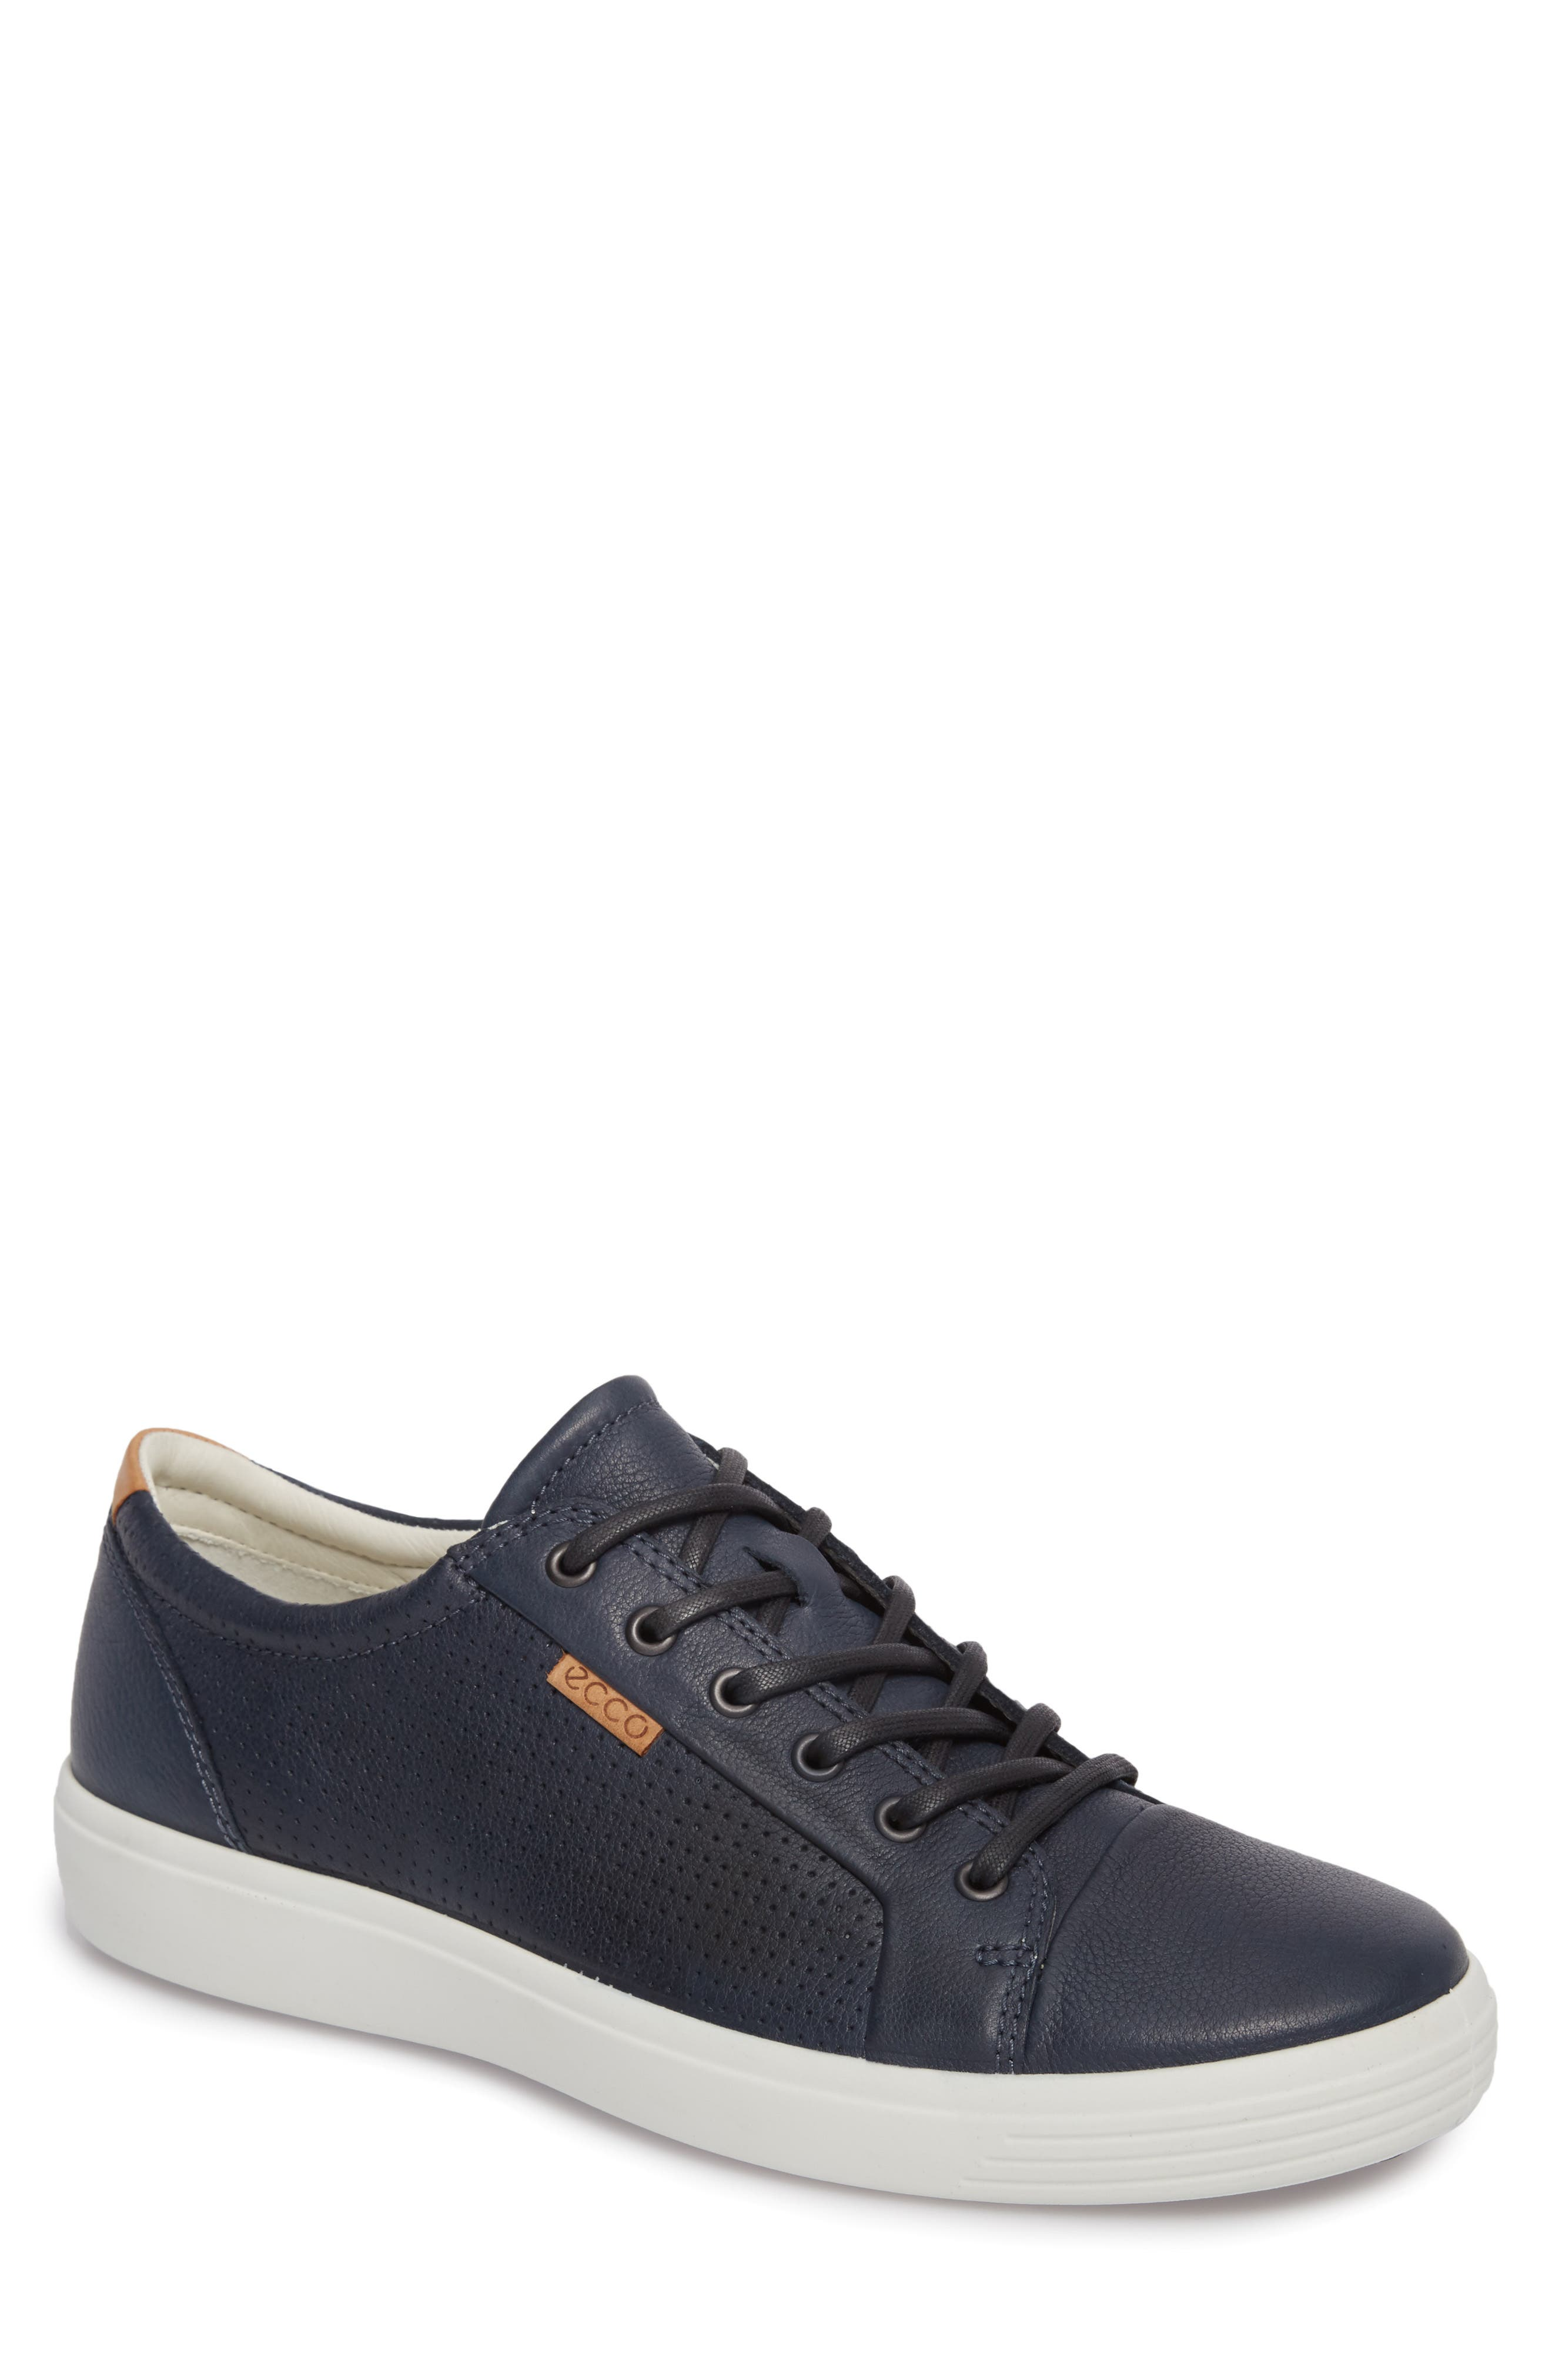 'Soft 7' Sneaker,                         Main,                         color, NAVY LEATHER